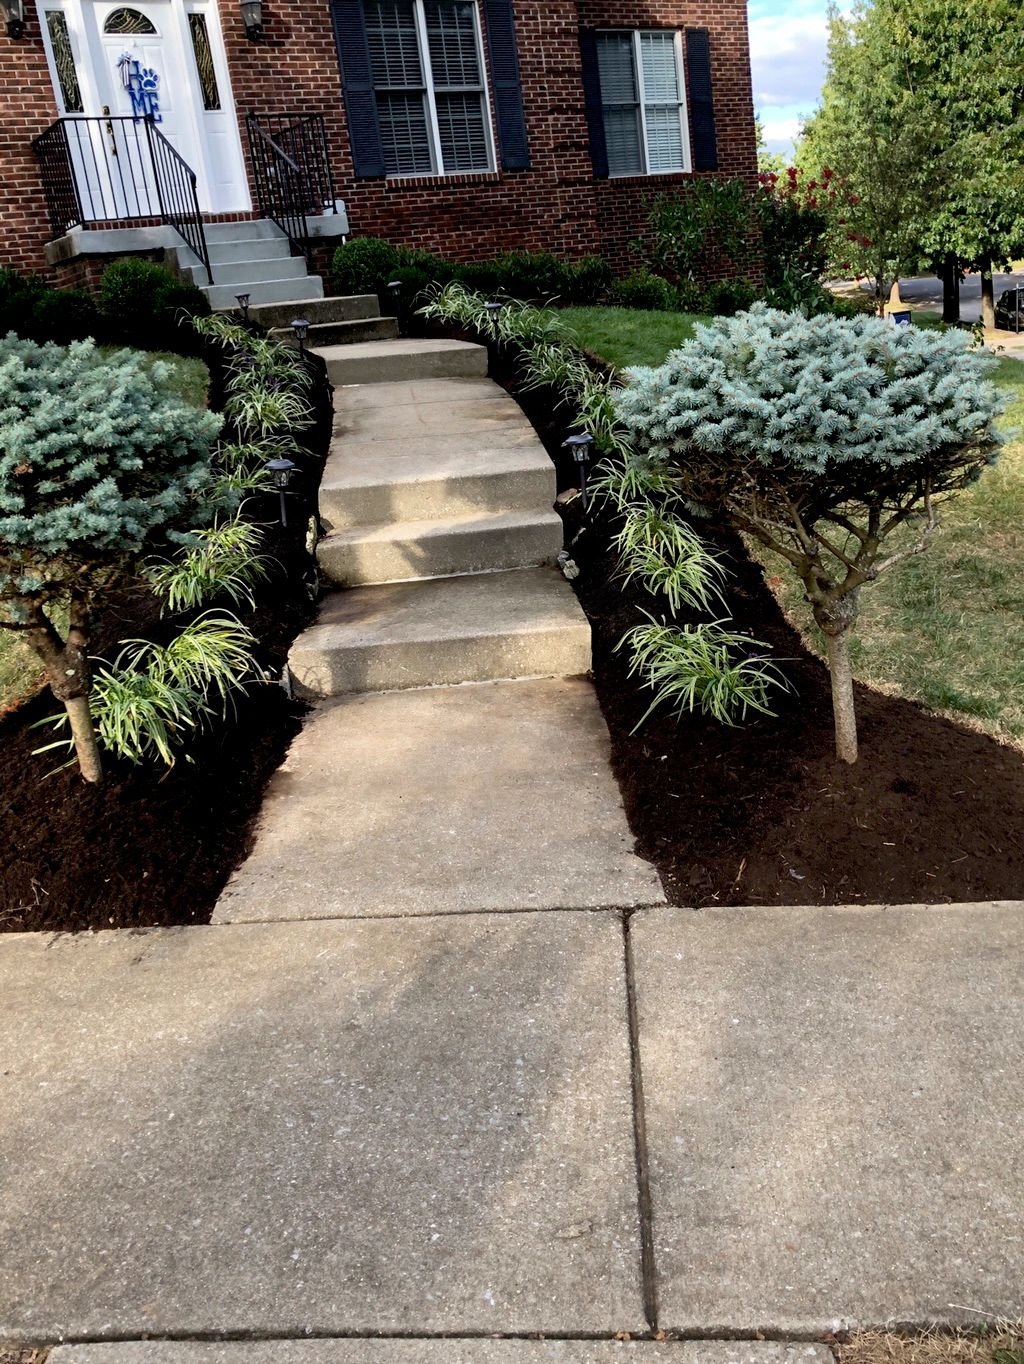 Harrinson's landscaping and maintenance